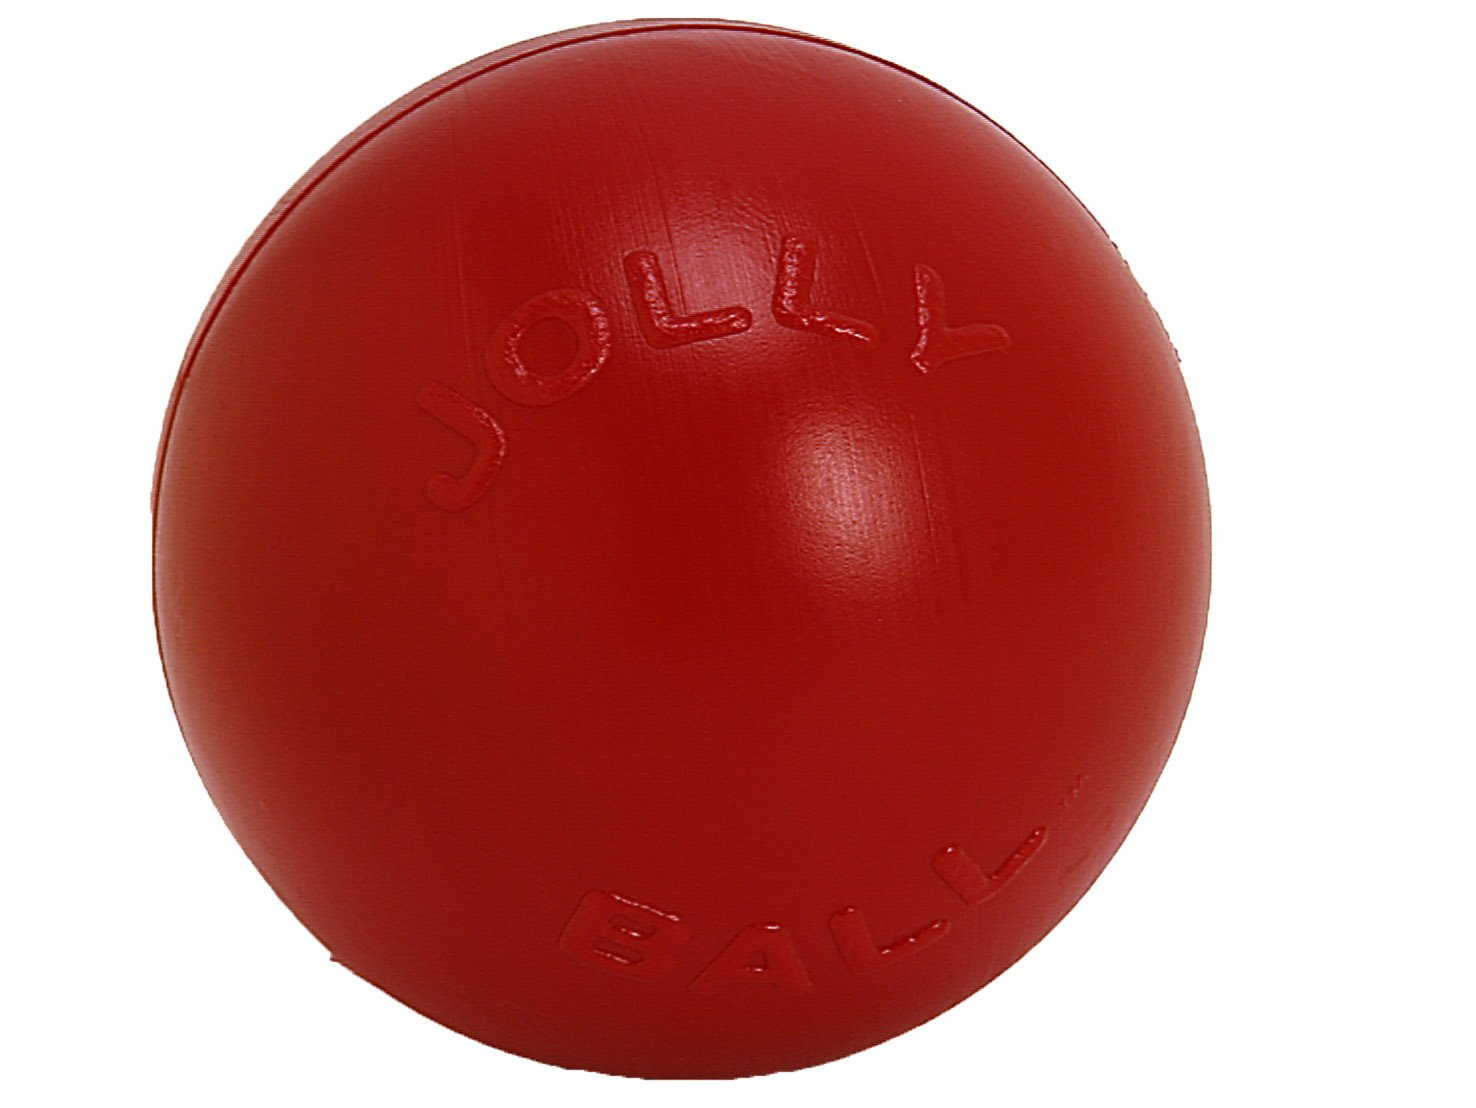 Jolly Pets 10-Inch Push-n-Play, Red by Jolly Pets (Image #1)